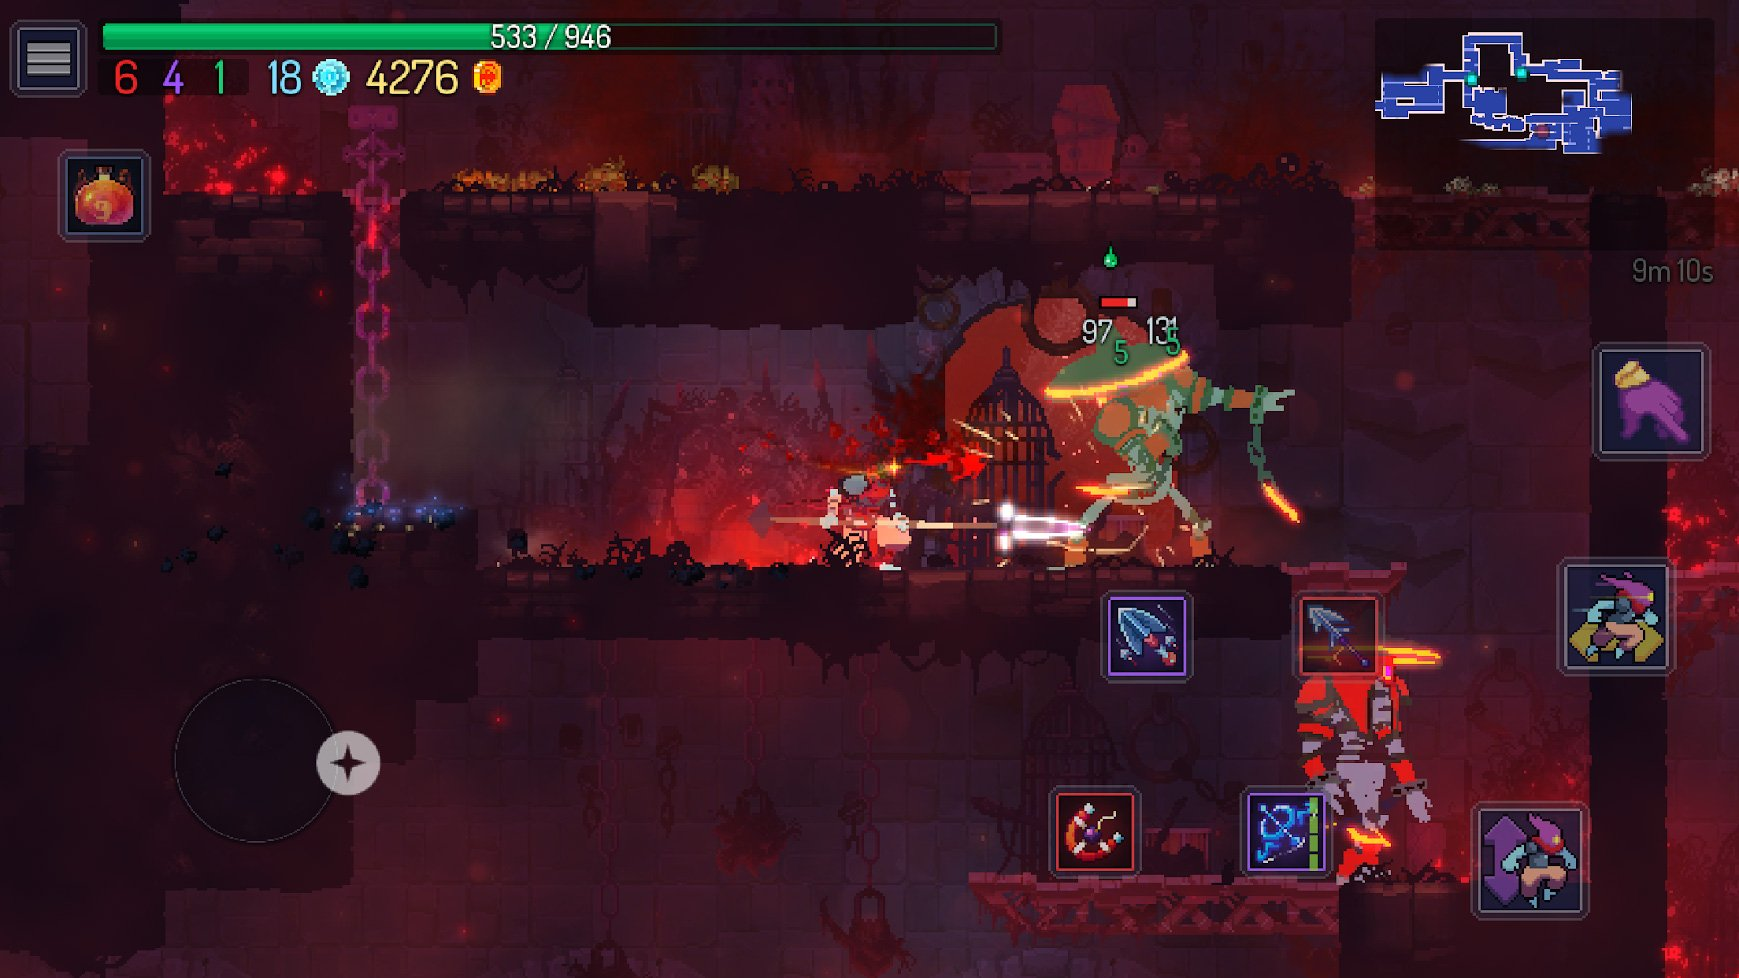 Dead Cells launches on Android with a slight discount screenshot